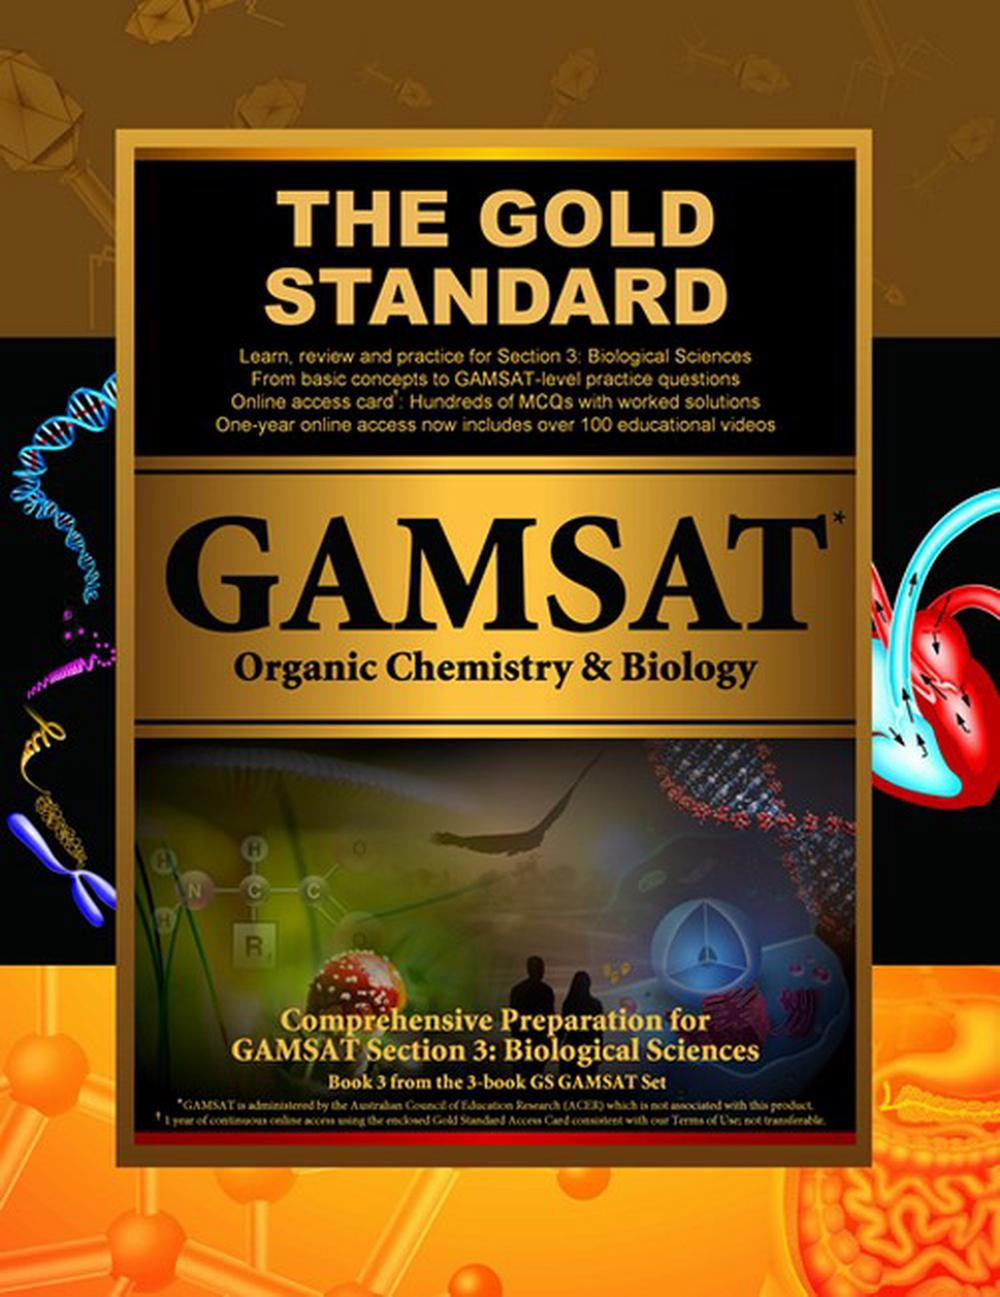 Booko: Comparing prices for Gold Standard GAMSAT Organic